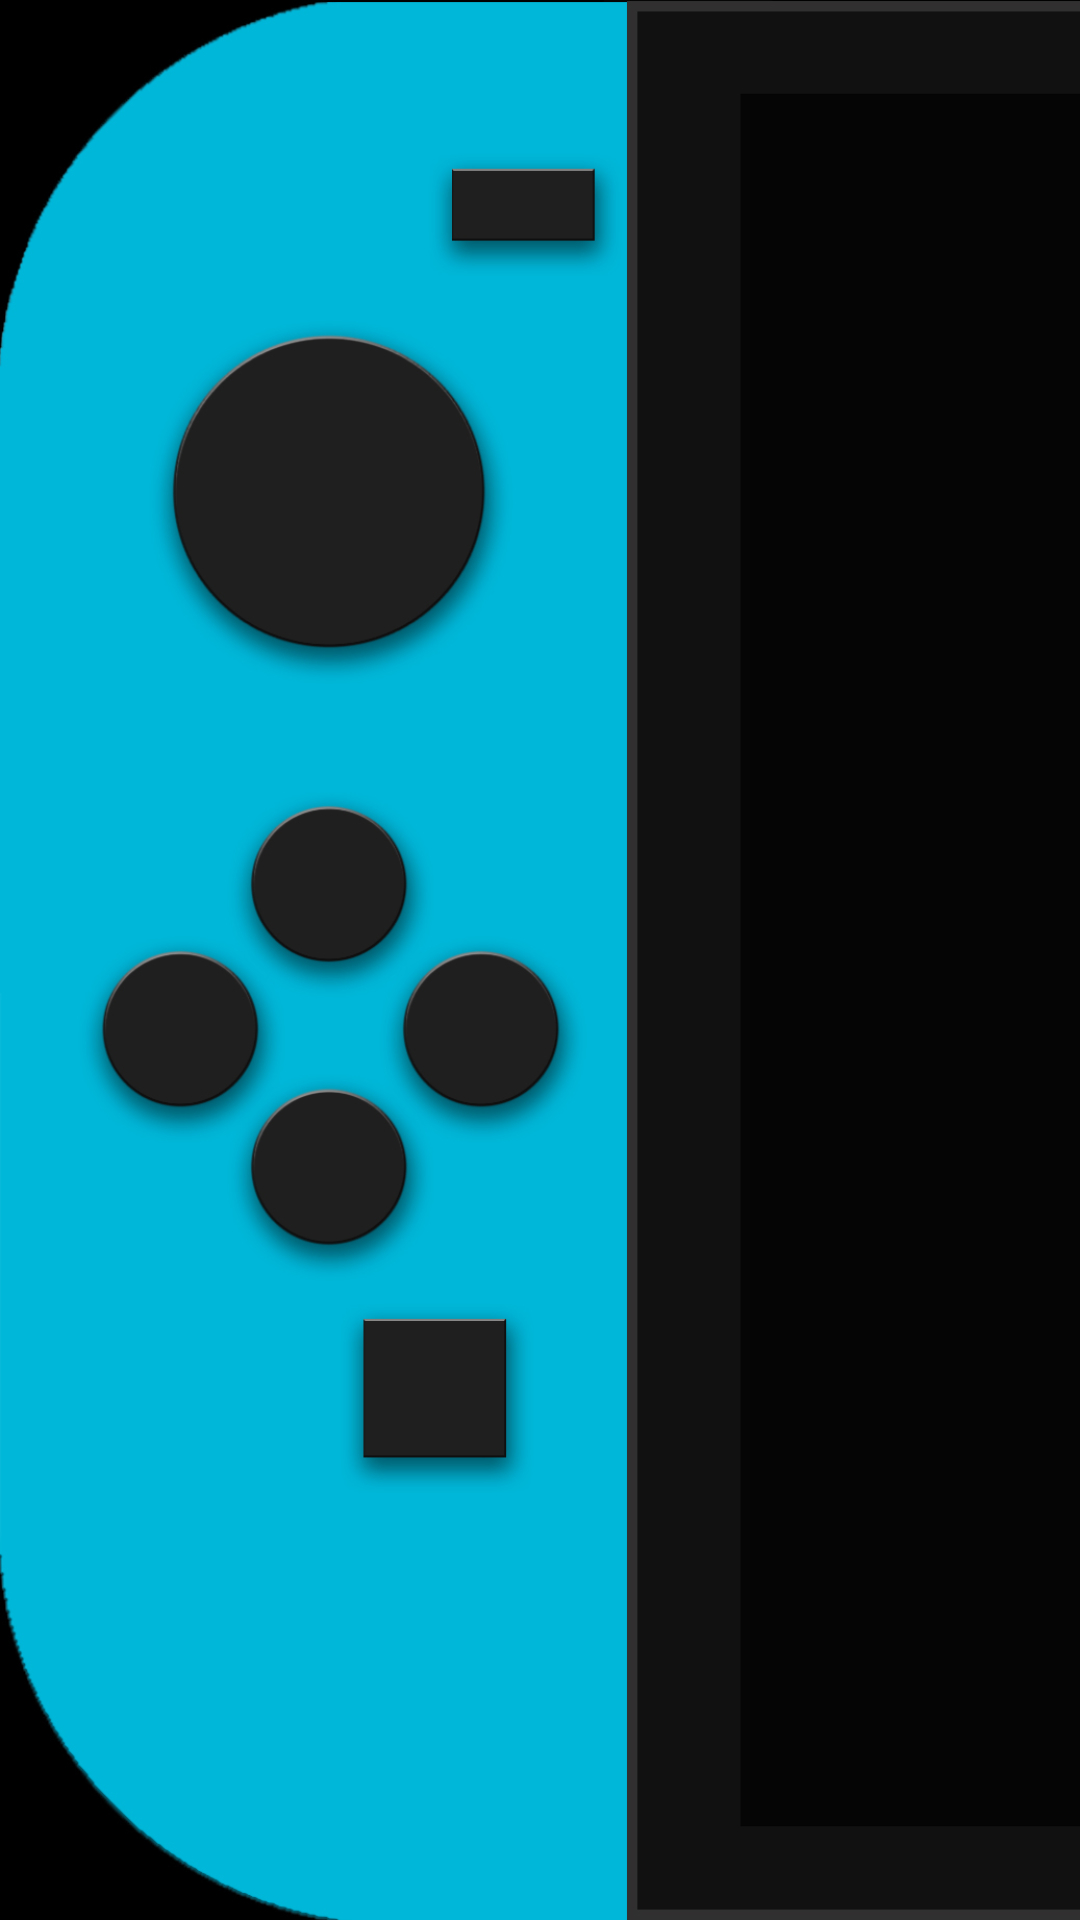 Video Game Nintendo Switch 1080x1920 Wallpaper Id 786400 Mobile Abyss